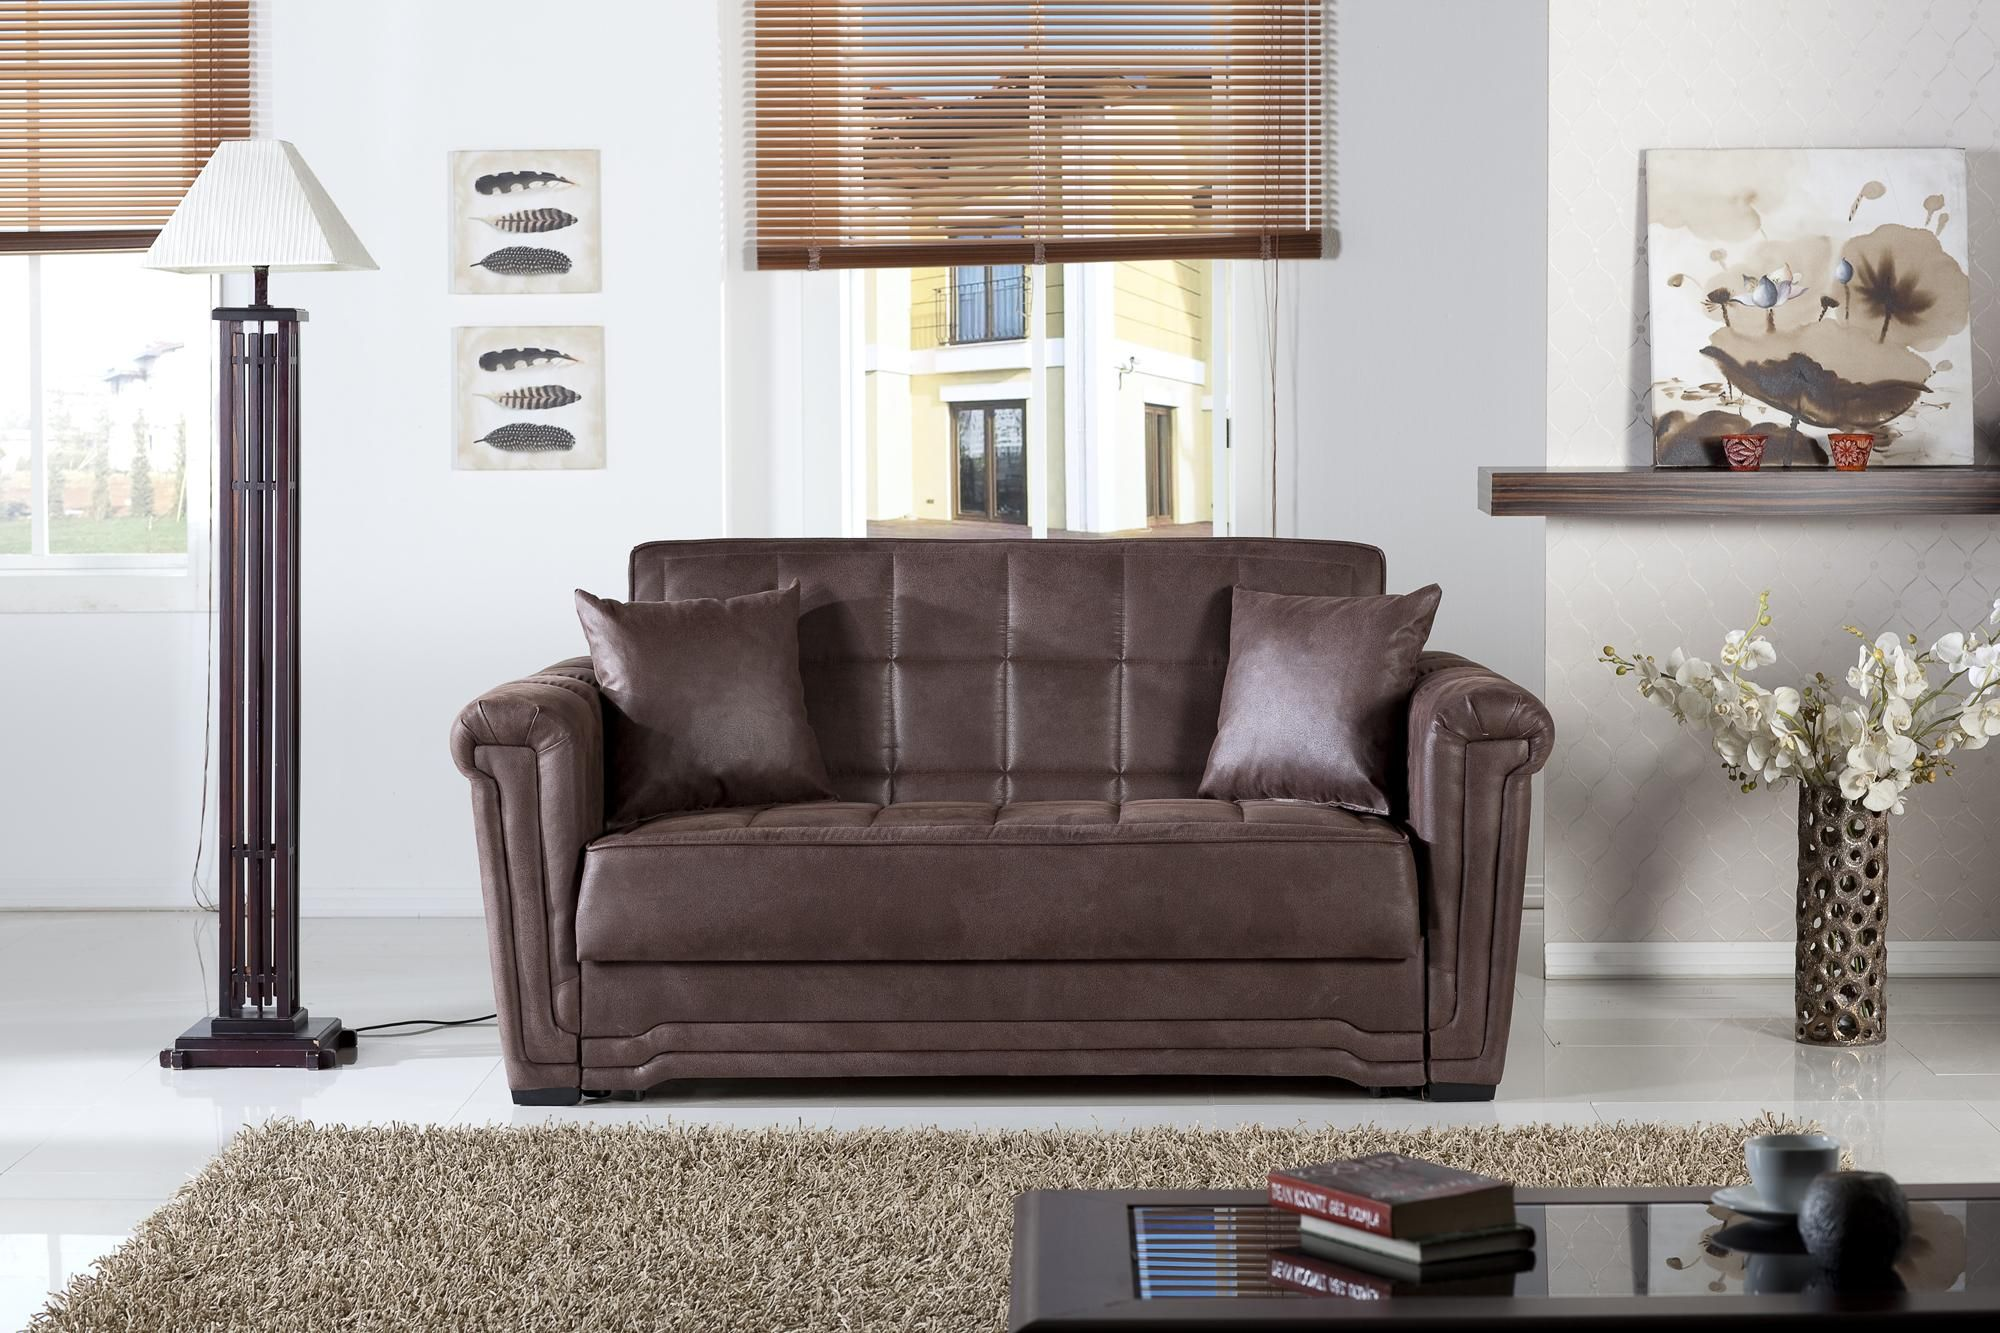 Victoria Mattress Convertible Sleeper With Images Contemporary Furniture Stores Love Seat